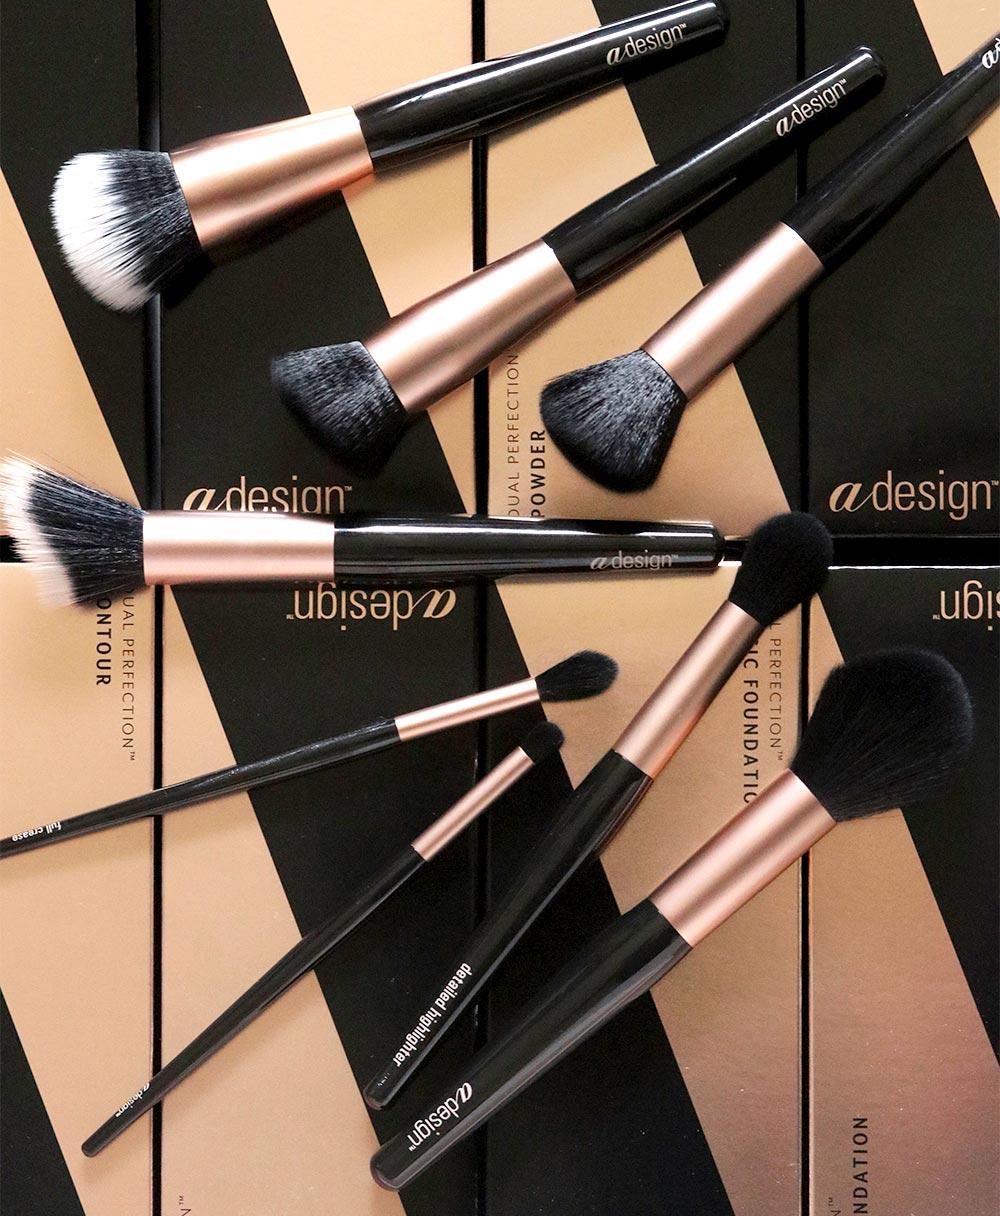 adesign makeup brushes 2